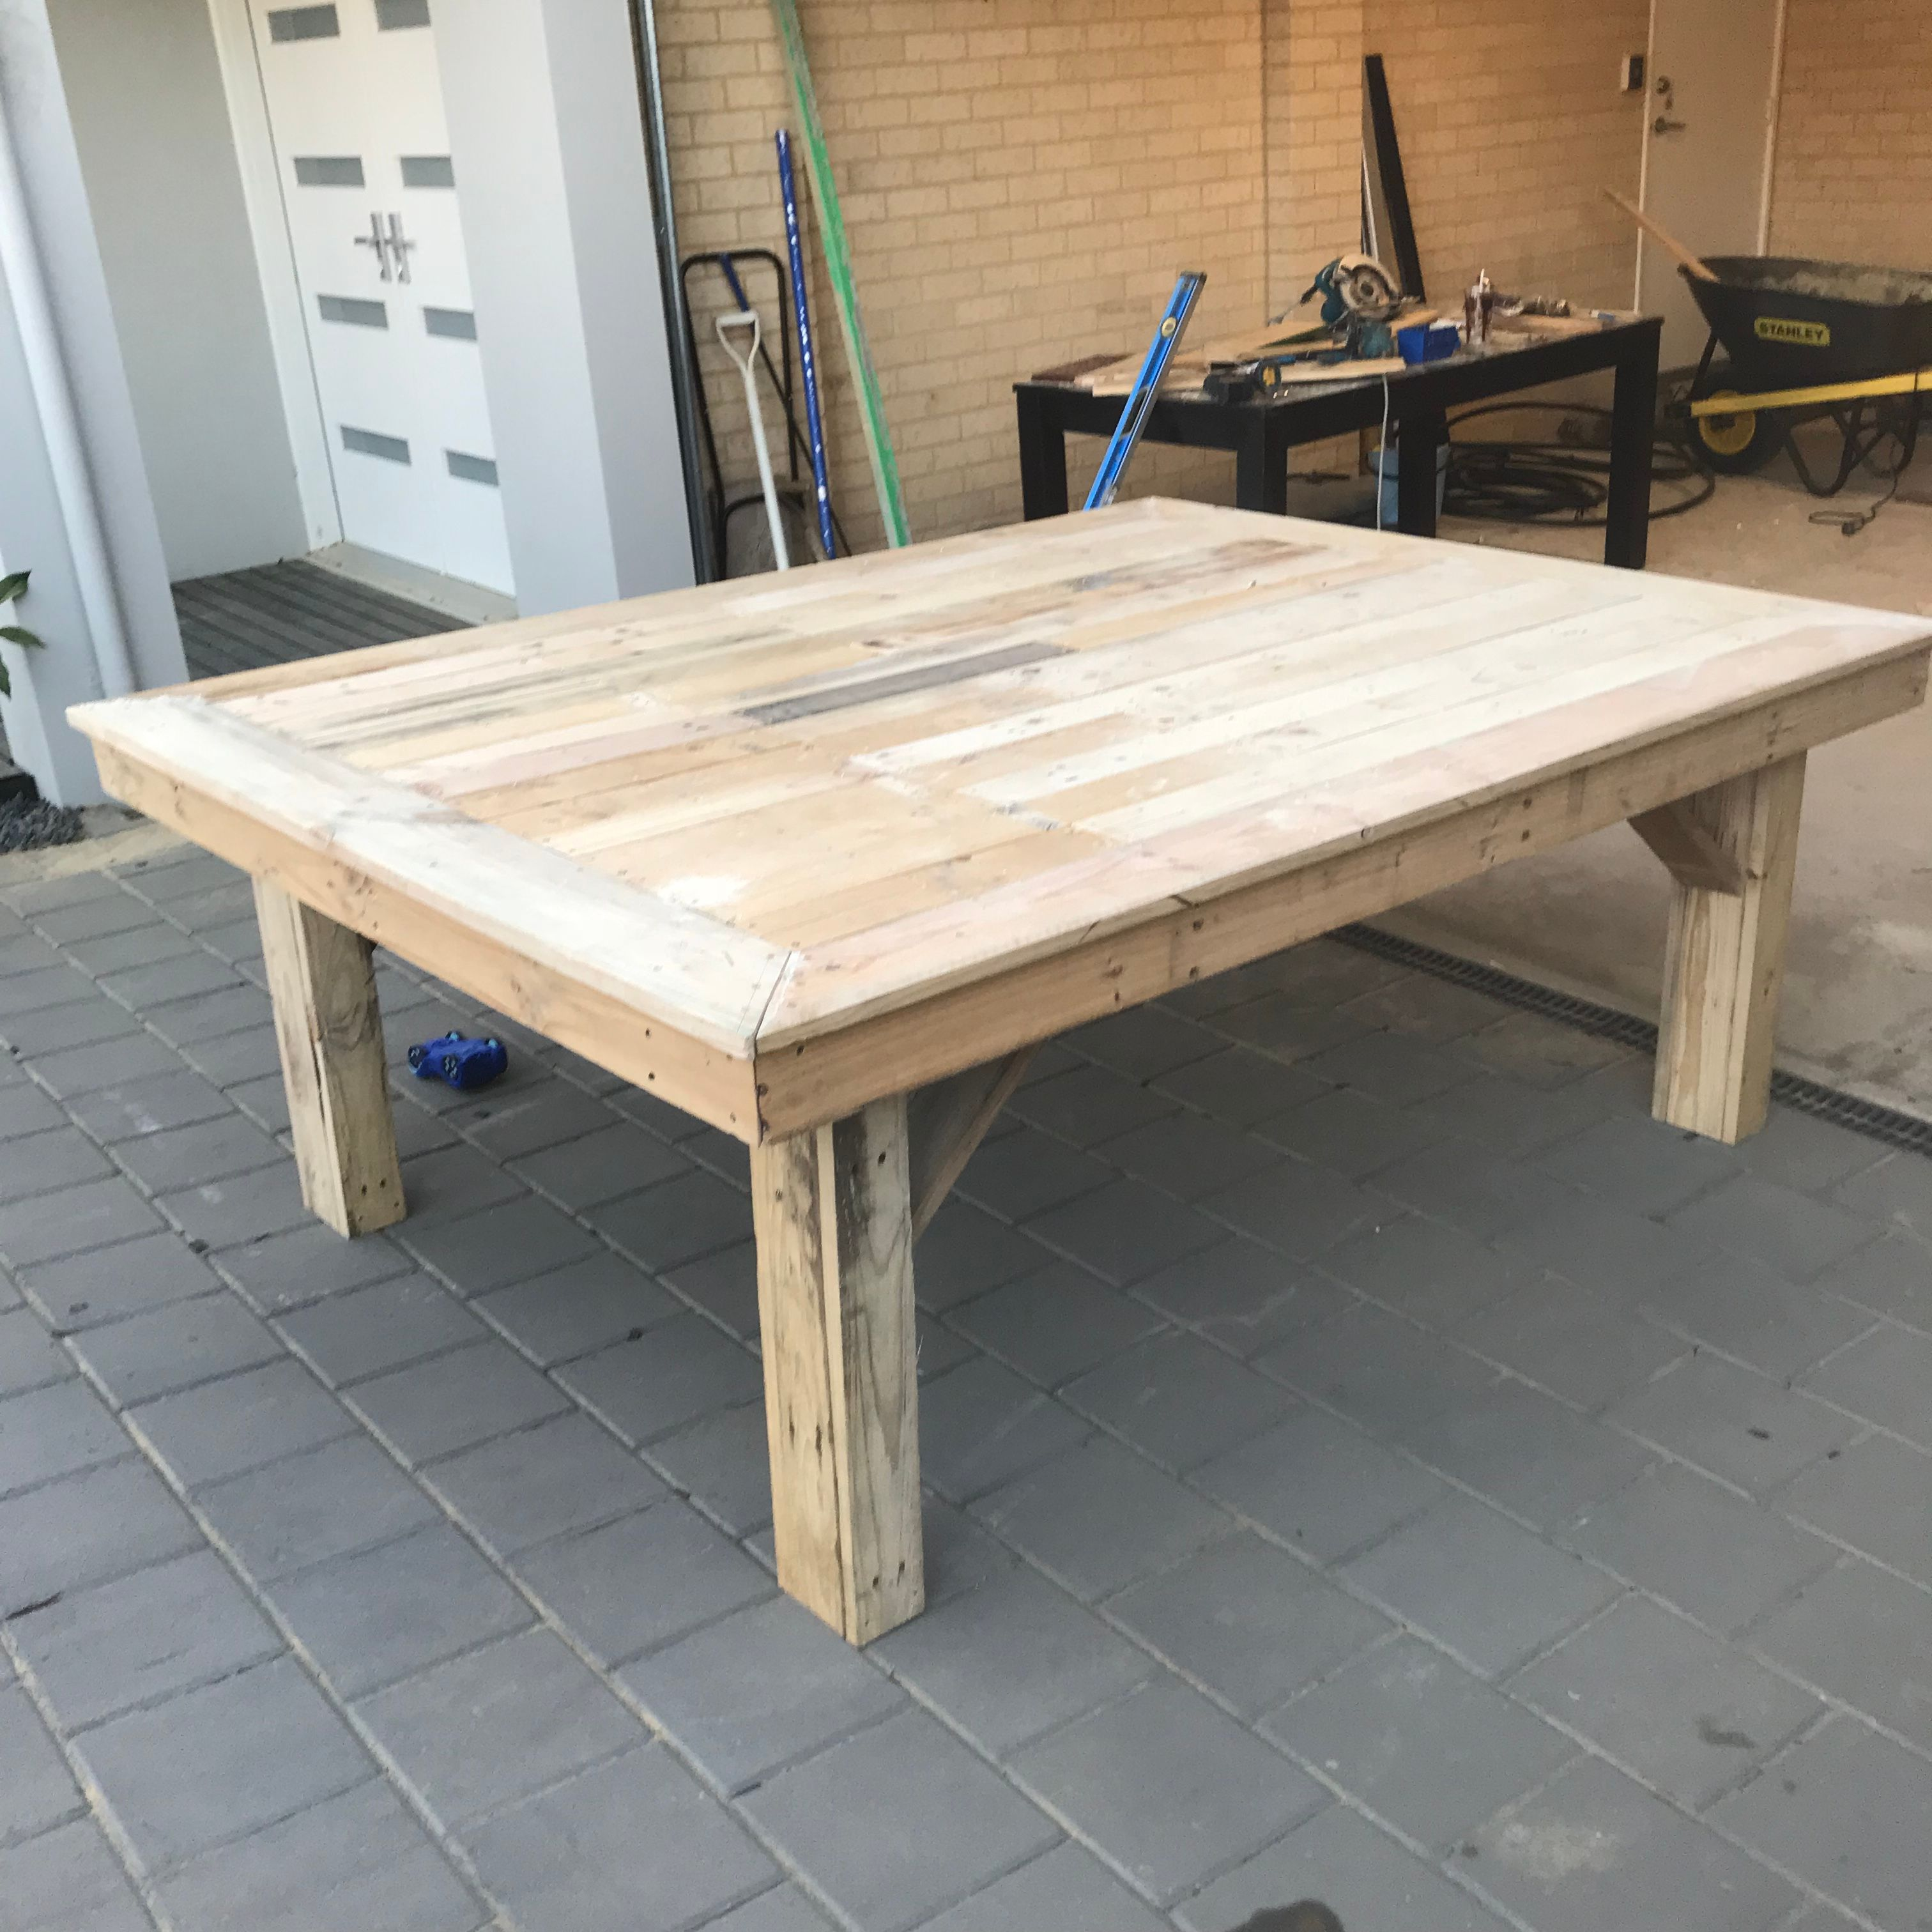 Recycled pallet wood outdoor table - Workshop